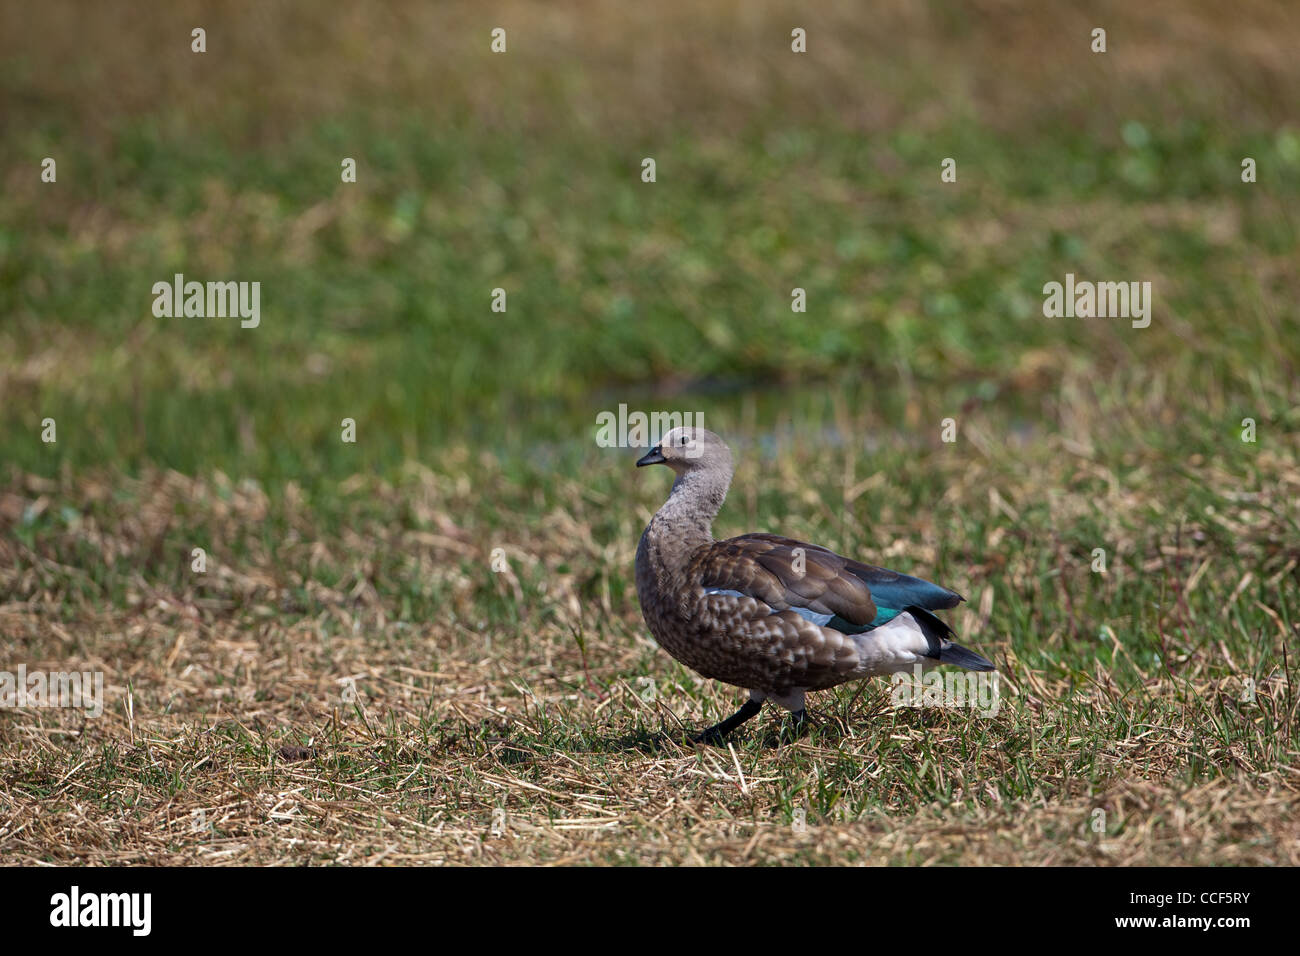 Abyssinian Blue-winged Goose (Cyanochen cyanopterus). Bale Mountains. Endemic. Ethiopia. - Stock Image